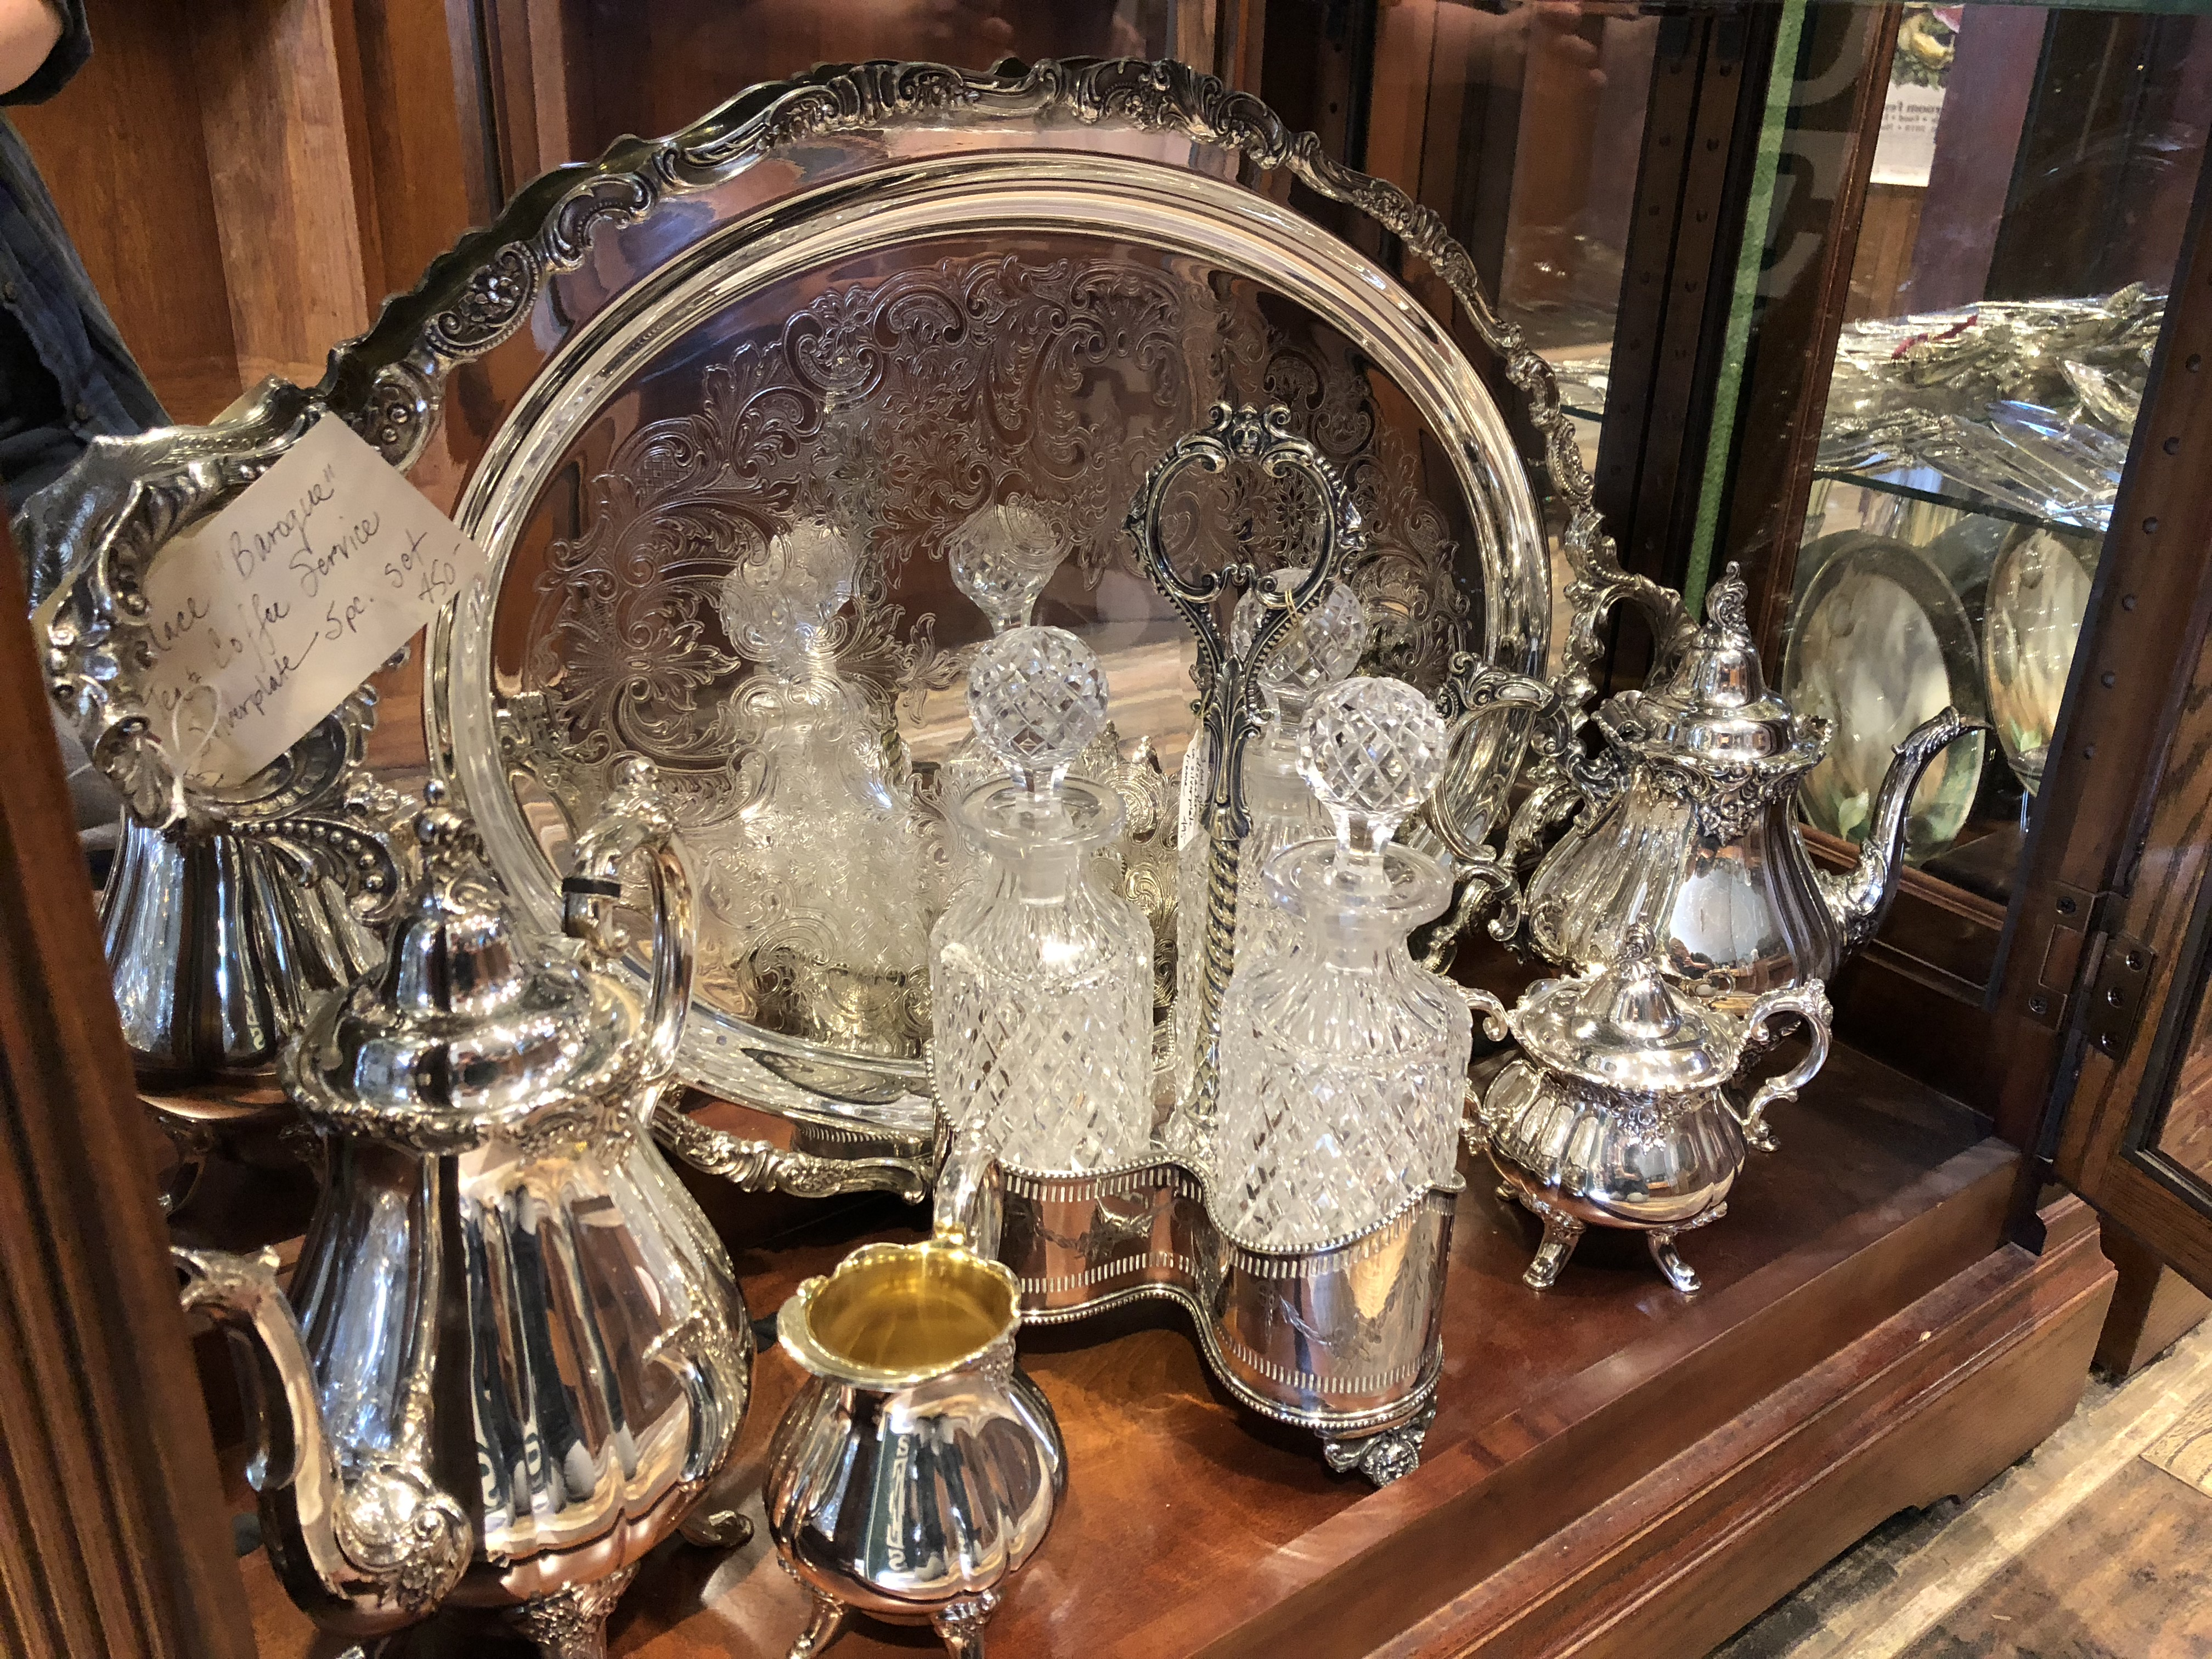 Silver plate tantalus & decanters